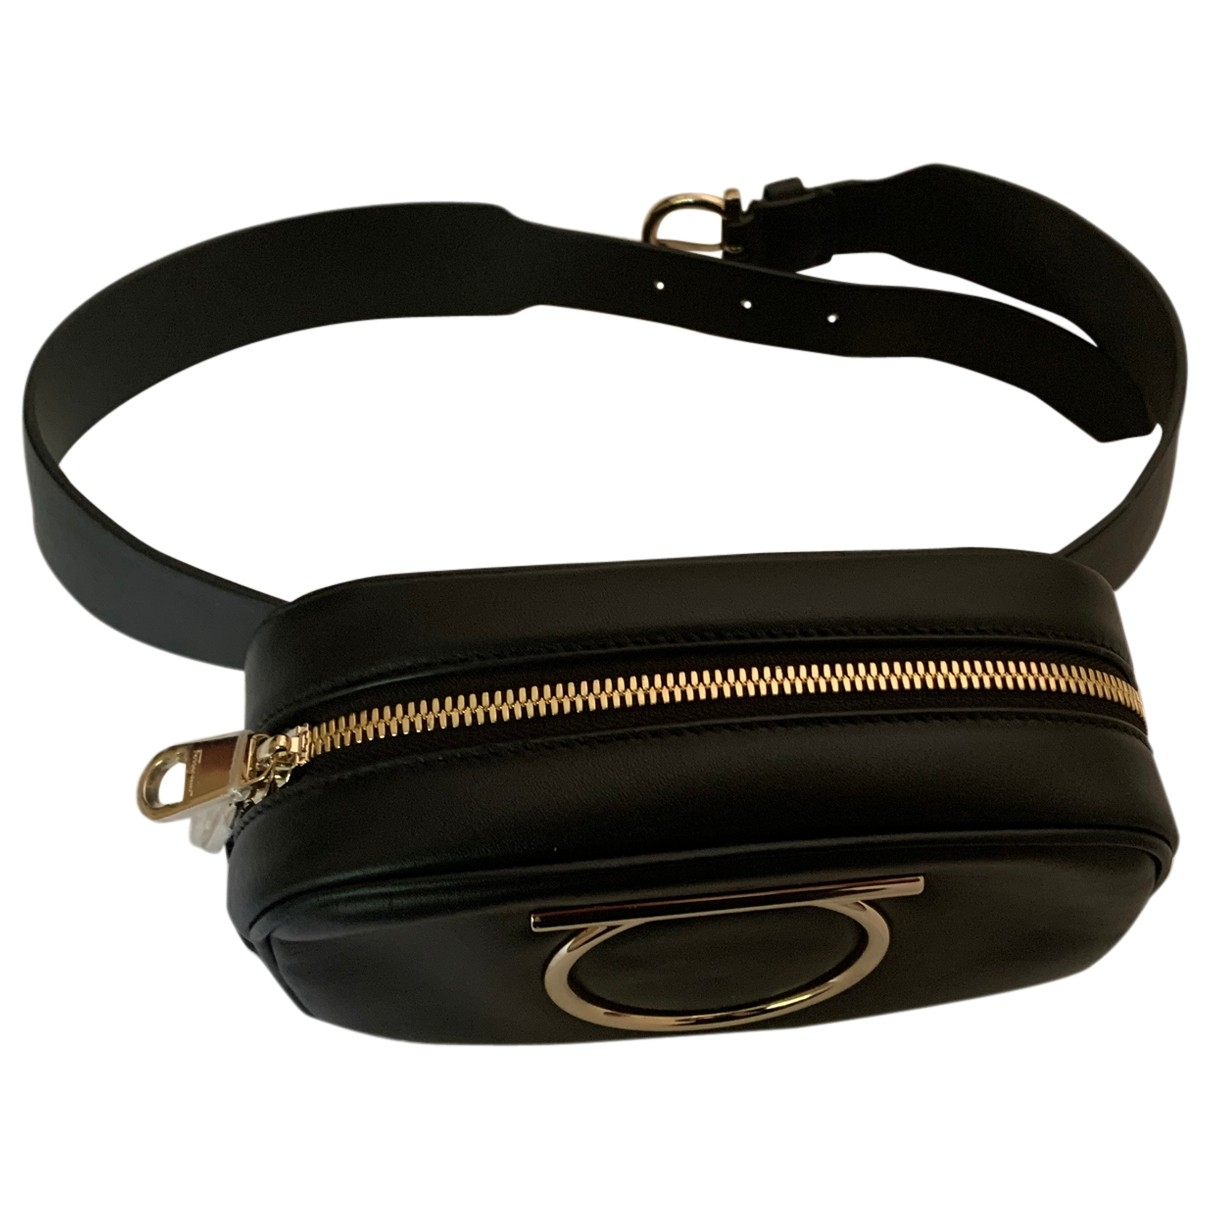 Salvatore Ferragamo \N Clutch in  Schwarz Leder